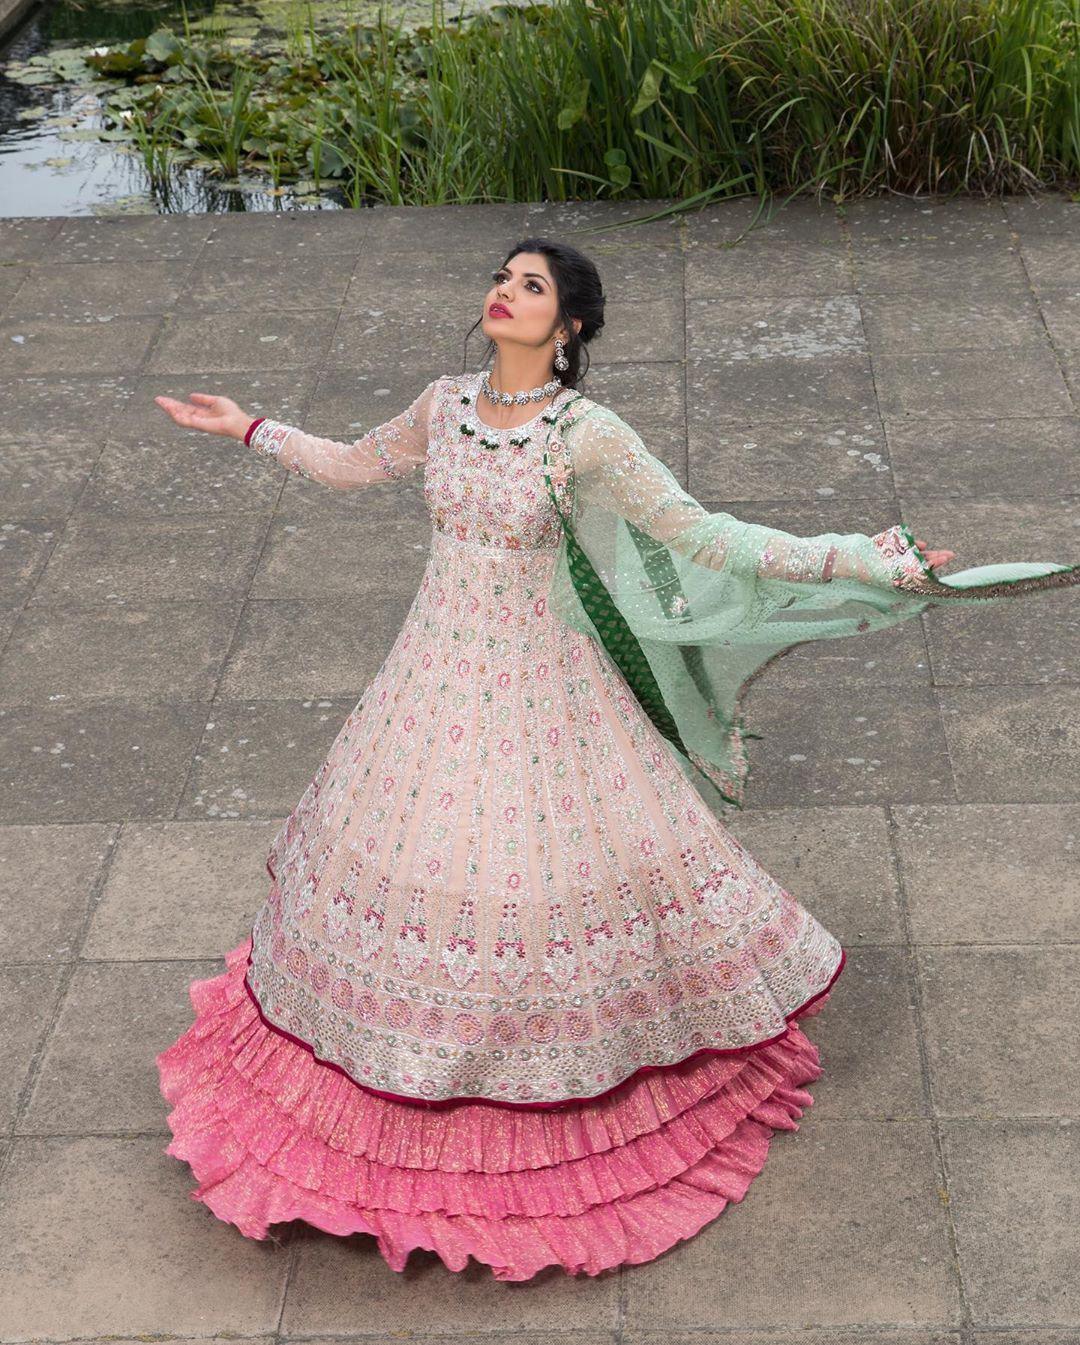 Opt for our ivory multiple-panel anarkali dress with exquisite embellishment on the bodice with pearls, sequins and silver kora, dabka. The daaman comprises of borders highlighted with floral embellished pattern. It is finished with deep blush frilled lehengha which adds to the bling. Dupatta is allured with four sided embellished border and sprinkled with stones all over it.